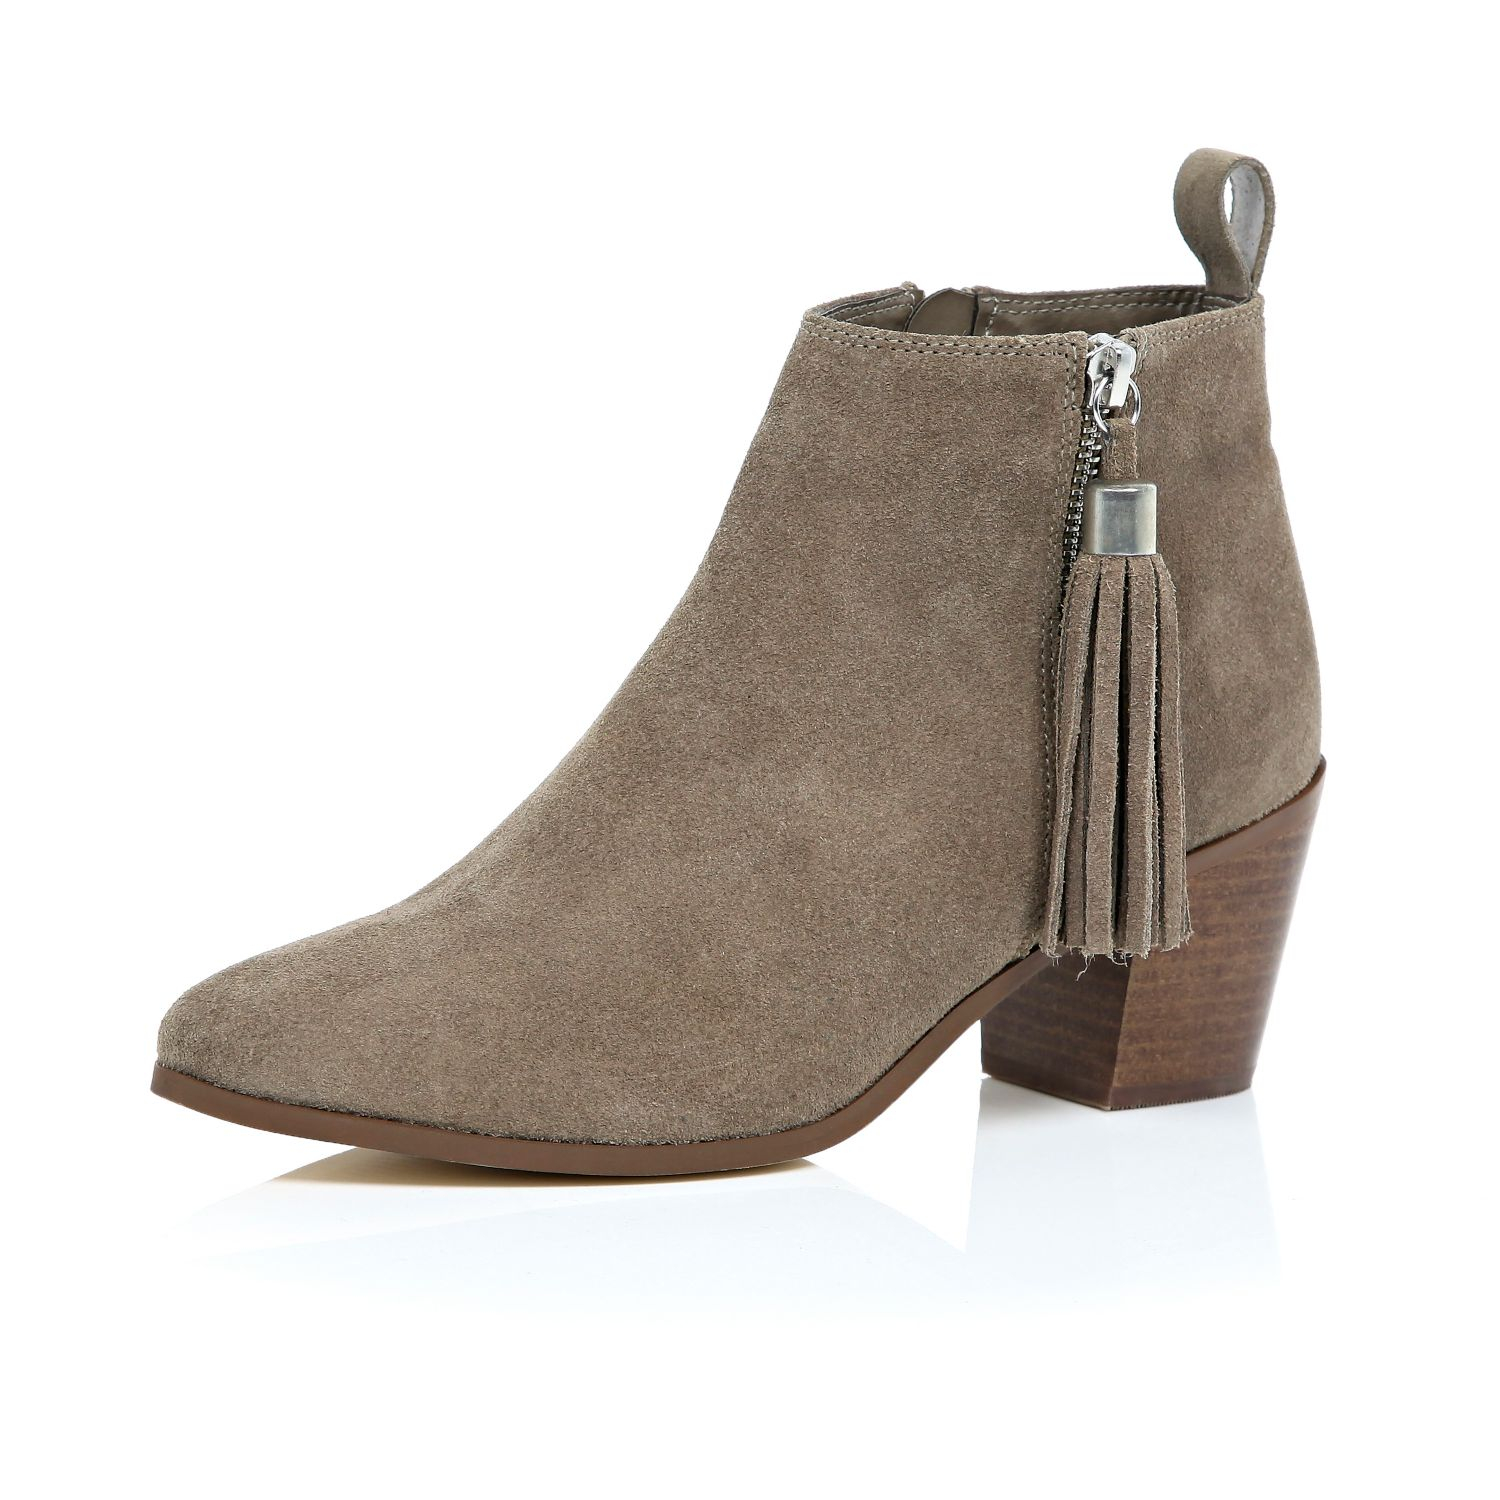 Shop for ankle tassel boots online at Target.5% Off W/ REDcard · Same Day Store Pick-Up · Free Shipping $35+ · Everyday Savings.